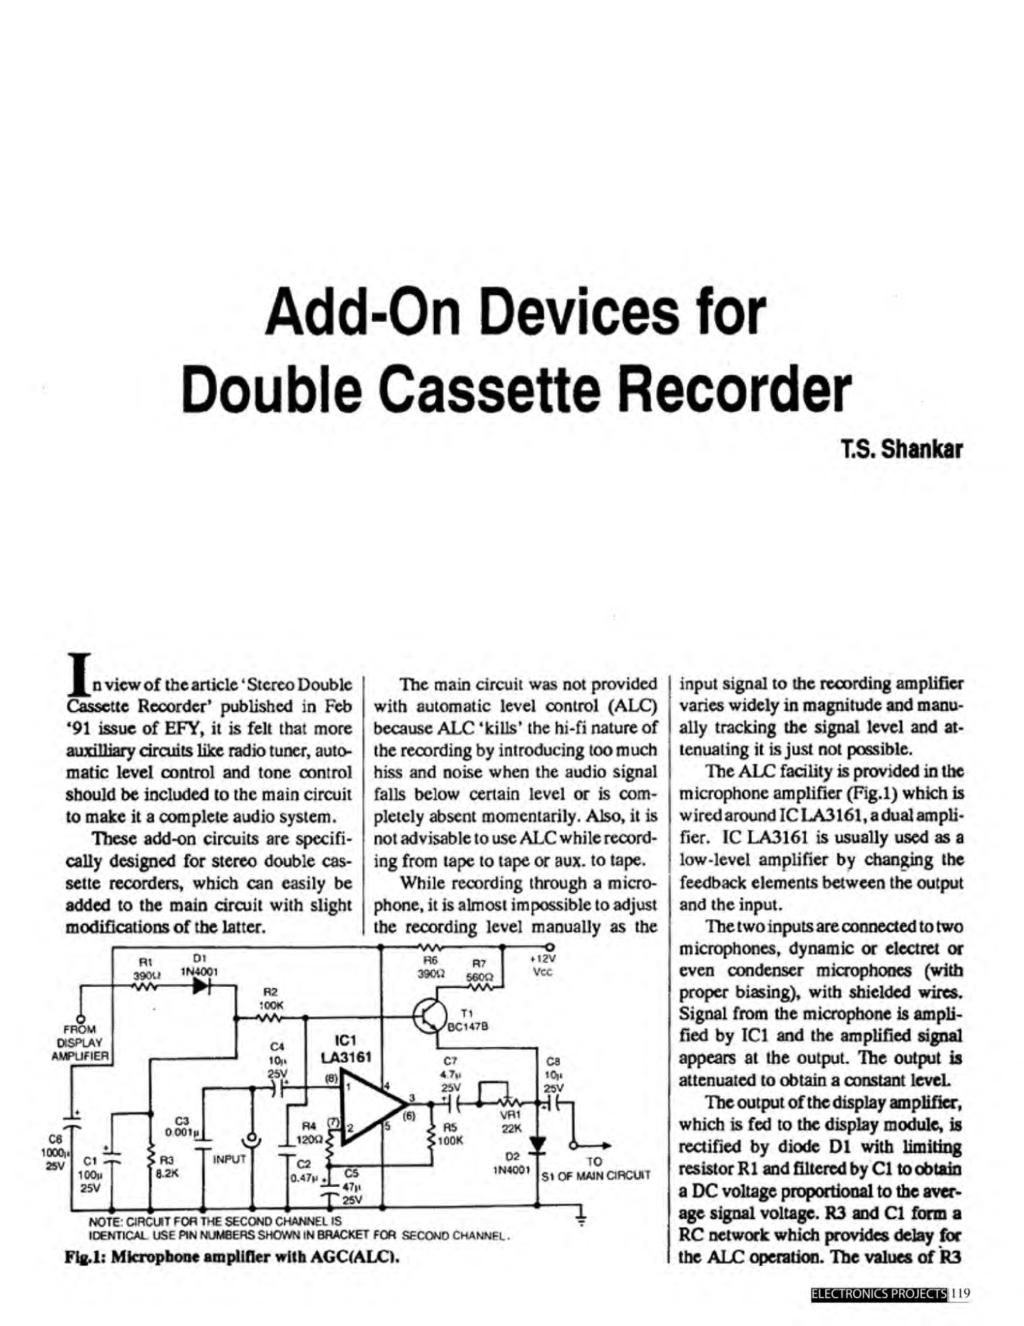 A Compilation Of 102 And Circuit Ideas For Construction Projects Stereo Tape Head Preamplifier Using La3161 Add On Devices Double Cassette Recorder Is